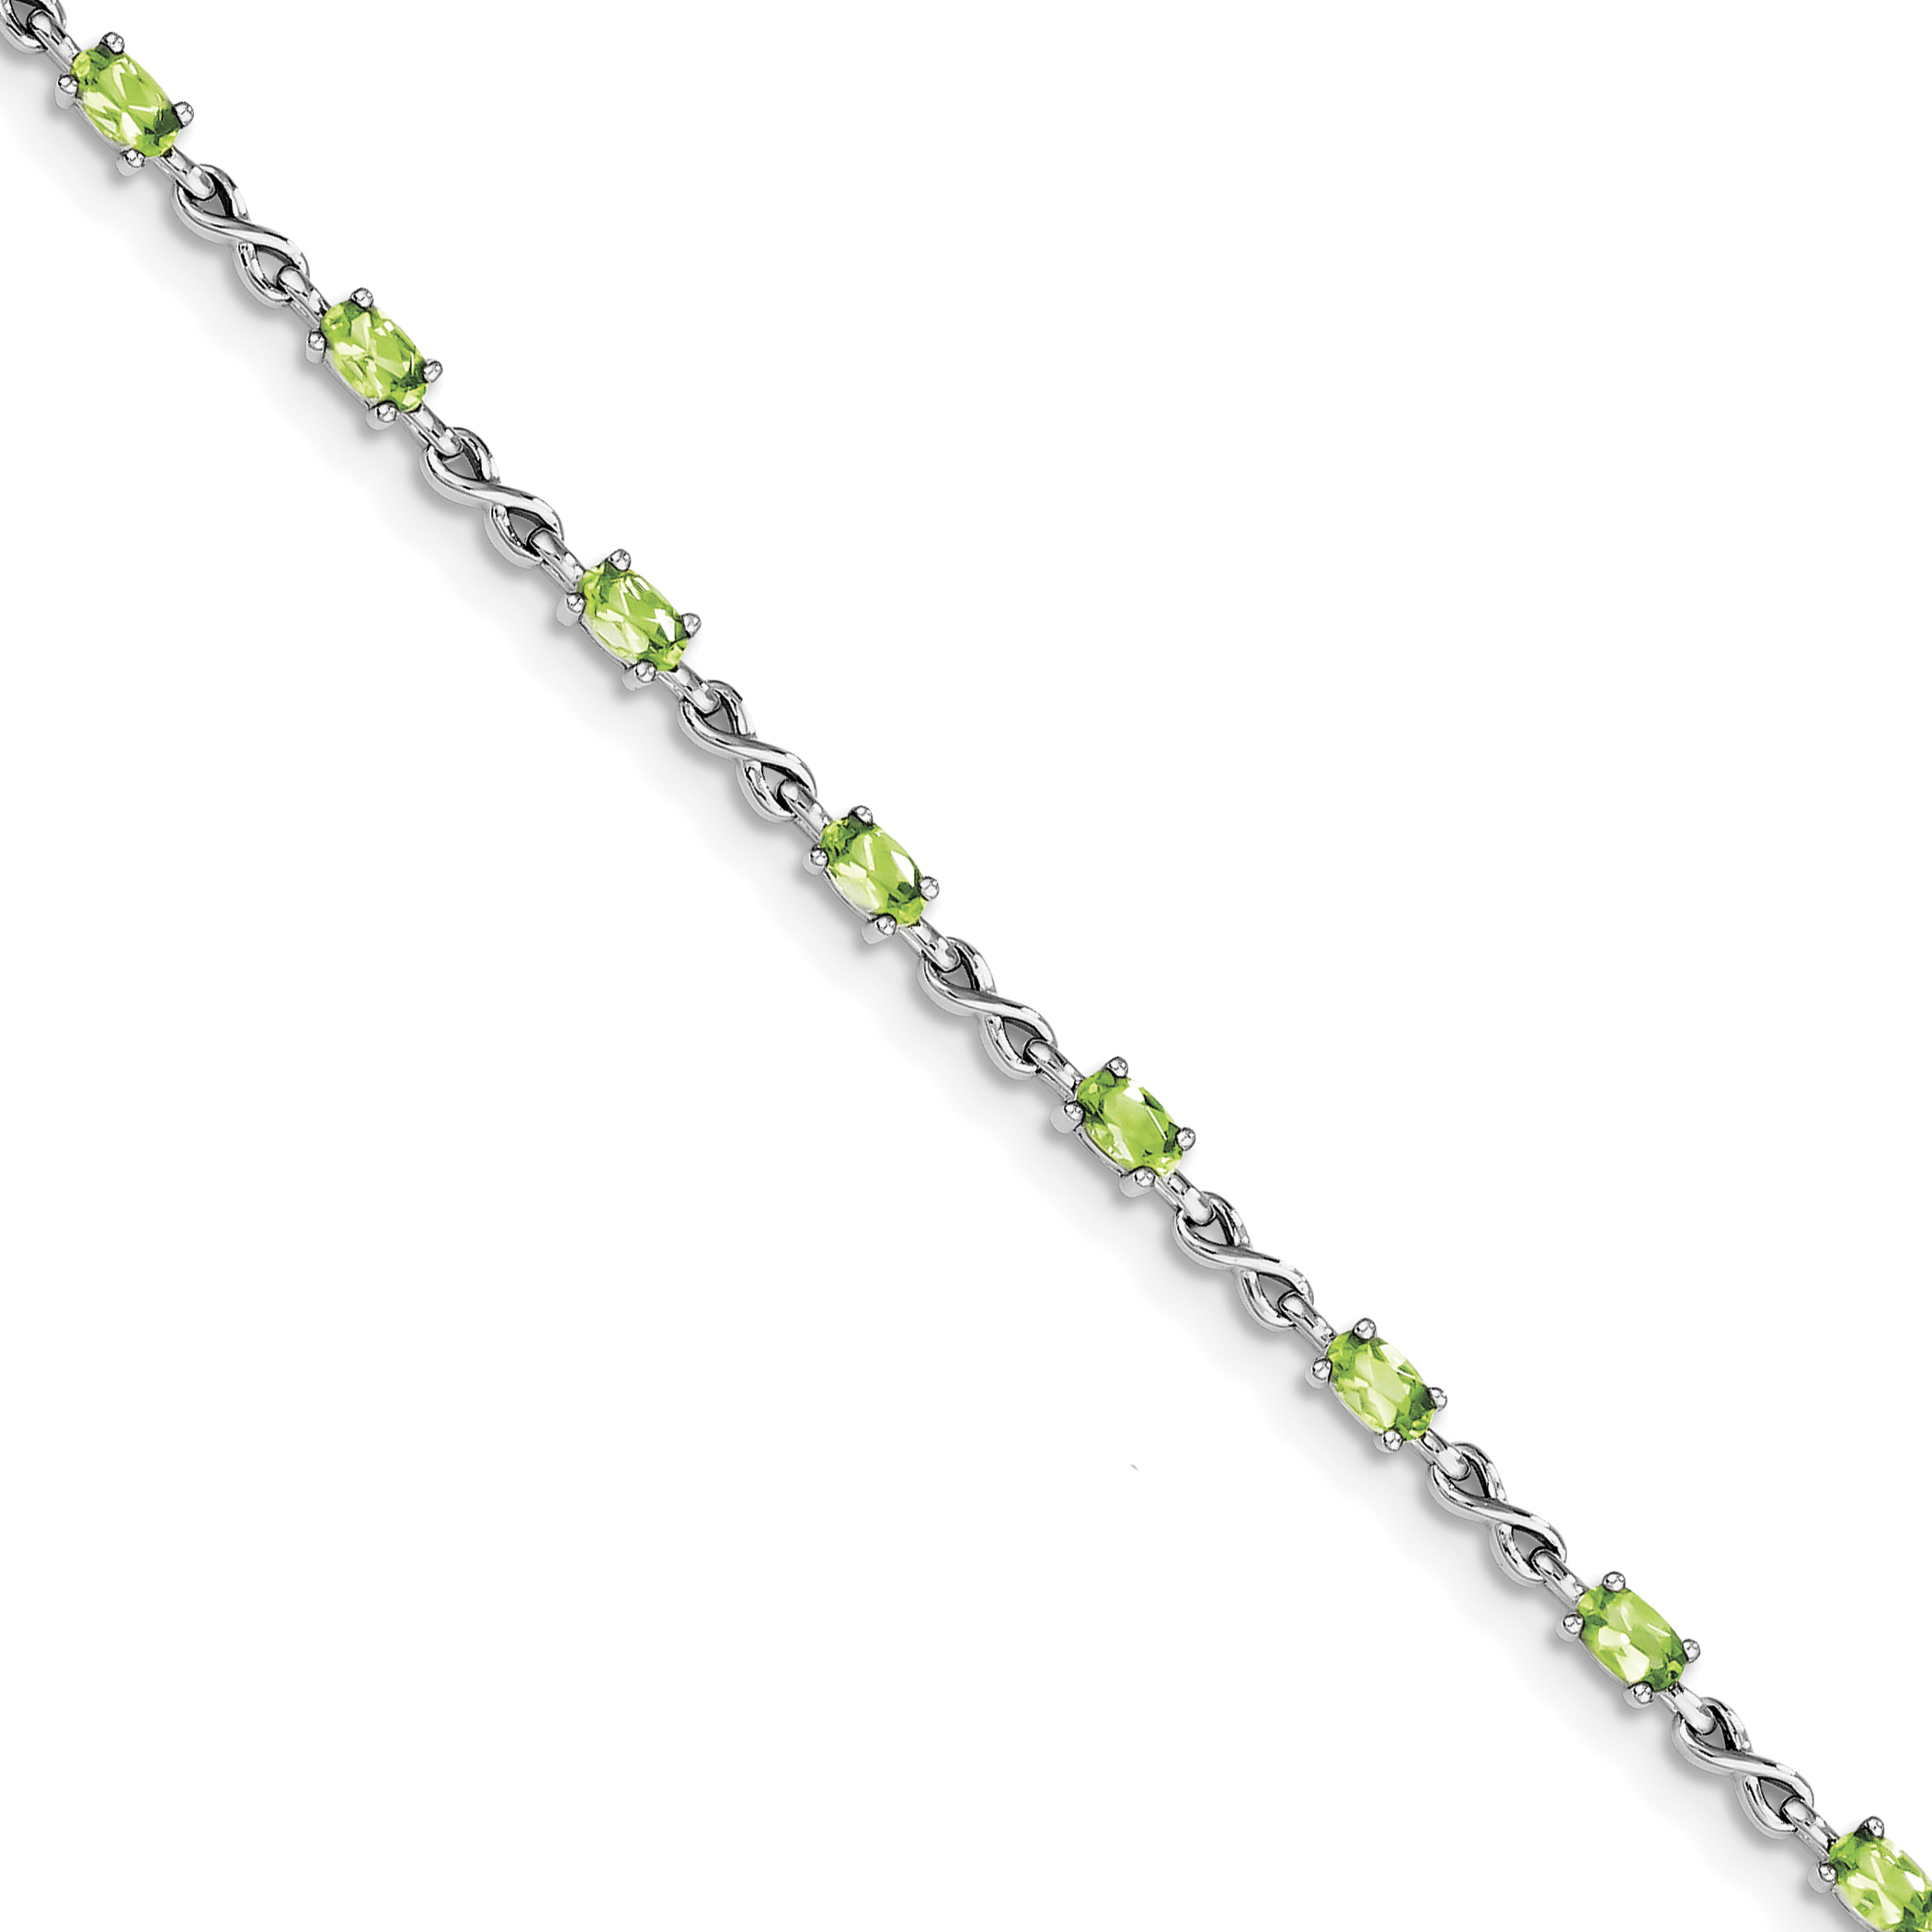 Roy Rose Jewelry Sterling Silver Peridot Bracelet ~ Length 7.5'' inches by